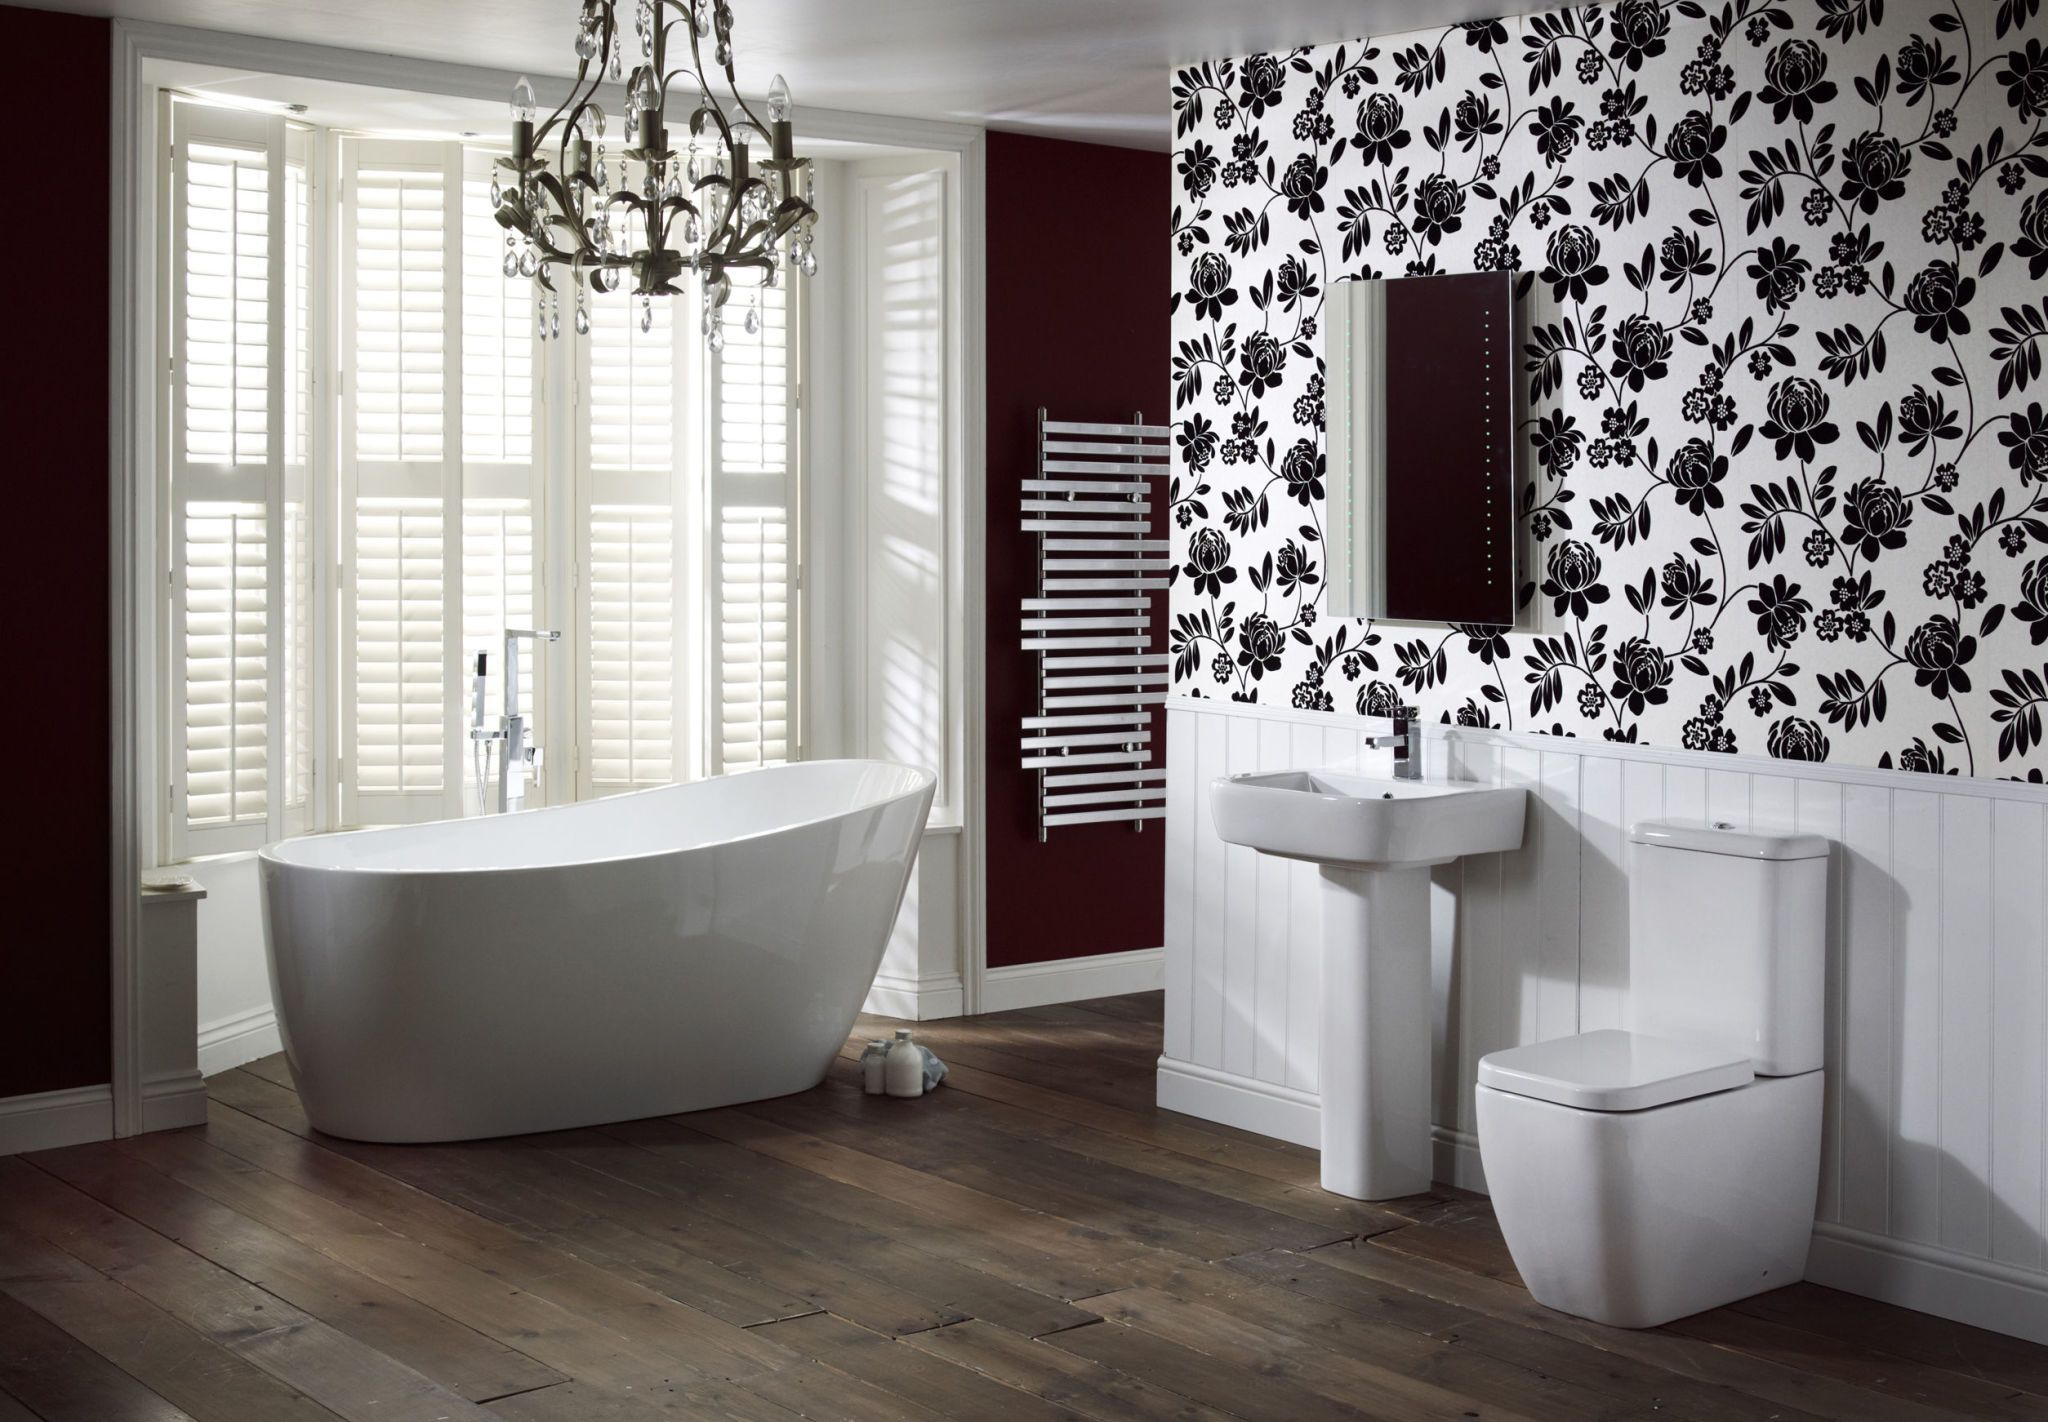 Charmant Adella Suite From The Contemporary Collection, Frontline Bathrooms